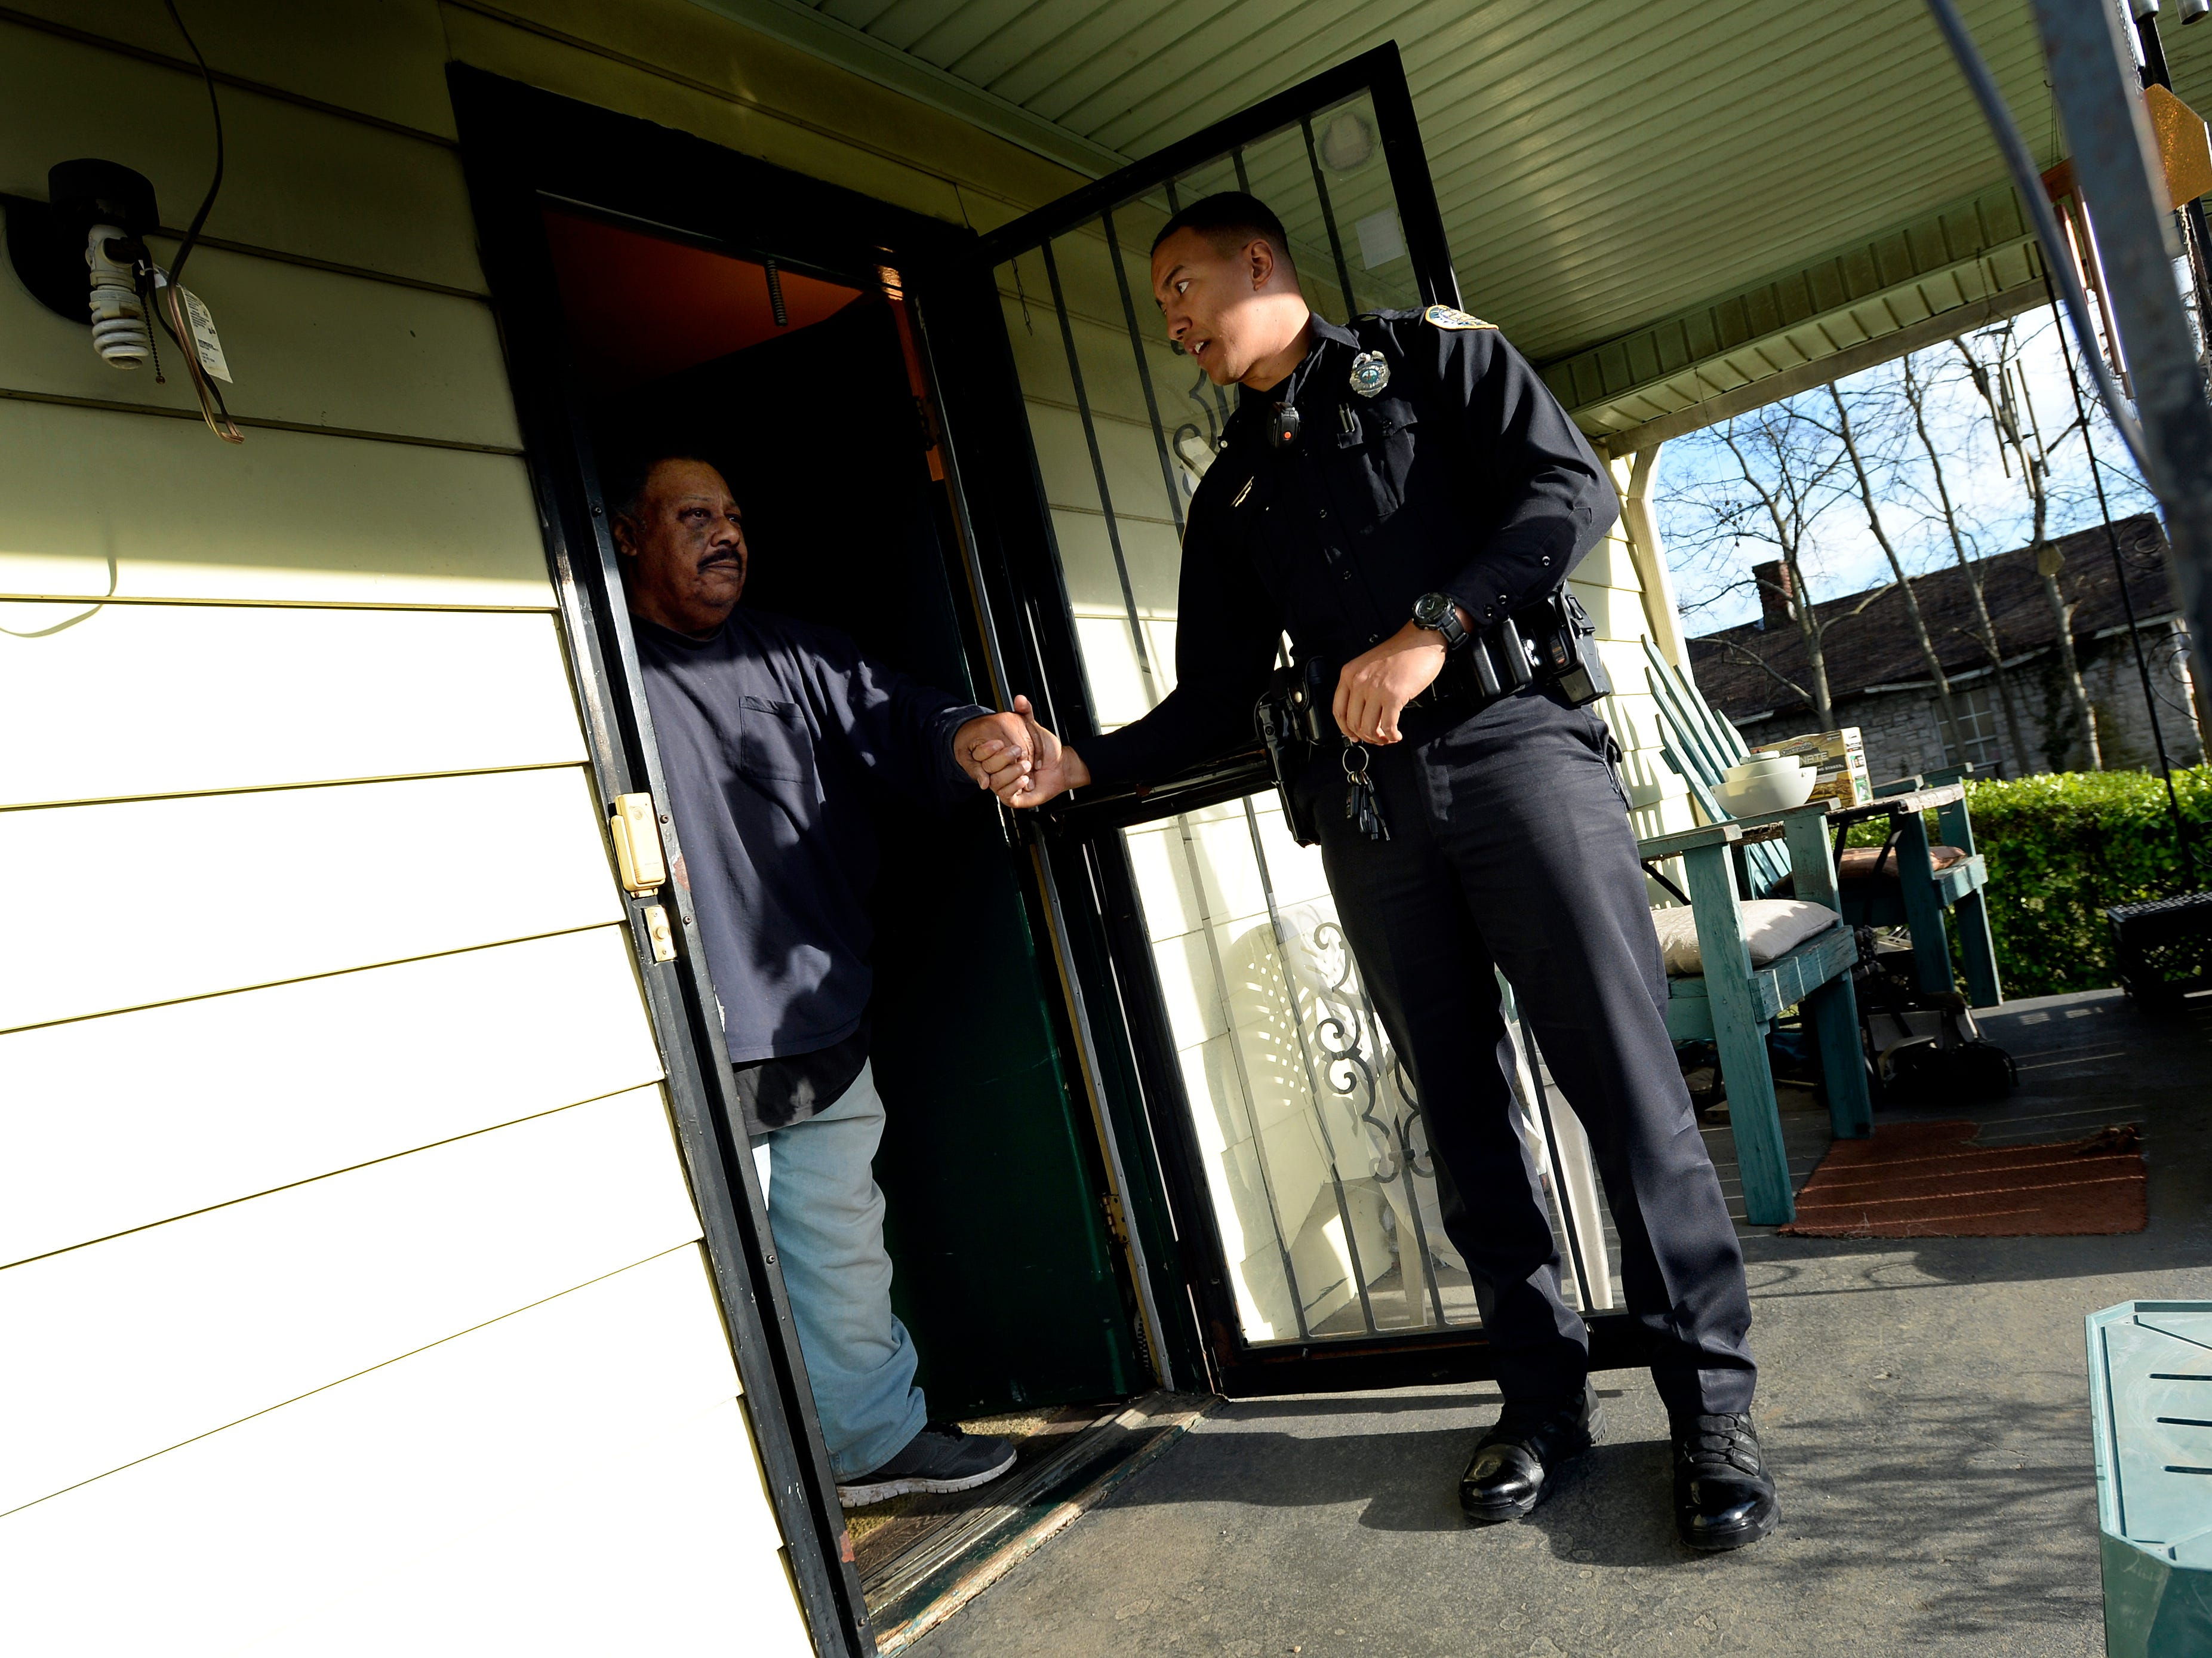 """Metro Nashville police officer Chris Dickerson shakes hands with Michael Taylor, 67, after spending time talking with him on Monday, April 1, 2019 in Nashville, Tenn. During the """"fixed post"""" time of his shift, Dickerson spends about 30 minutes in different areas of the north precinct visiting with people in the neighborhood."""